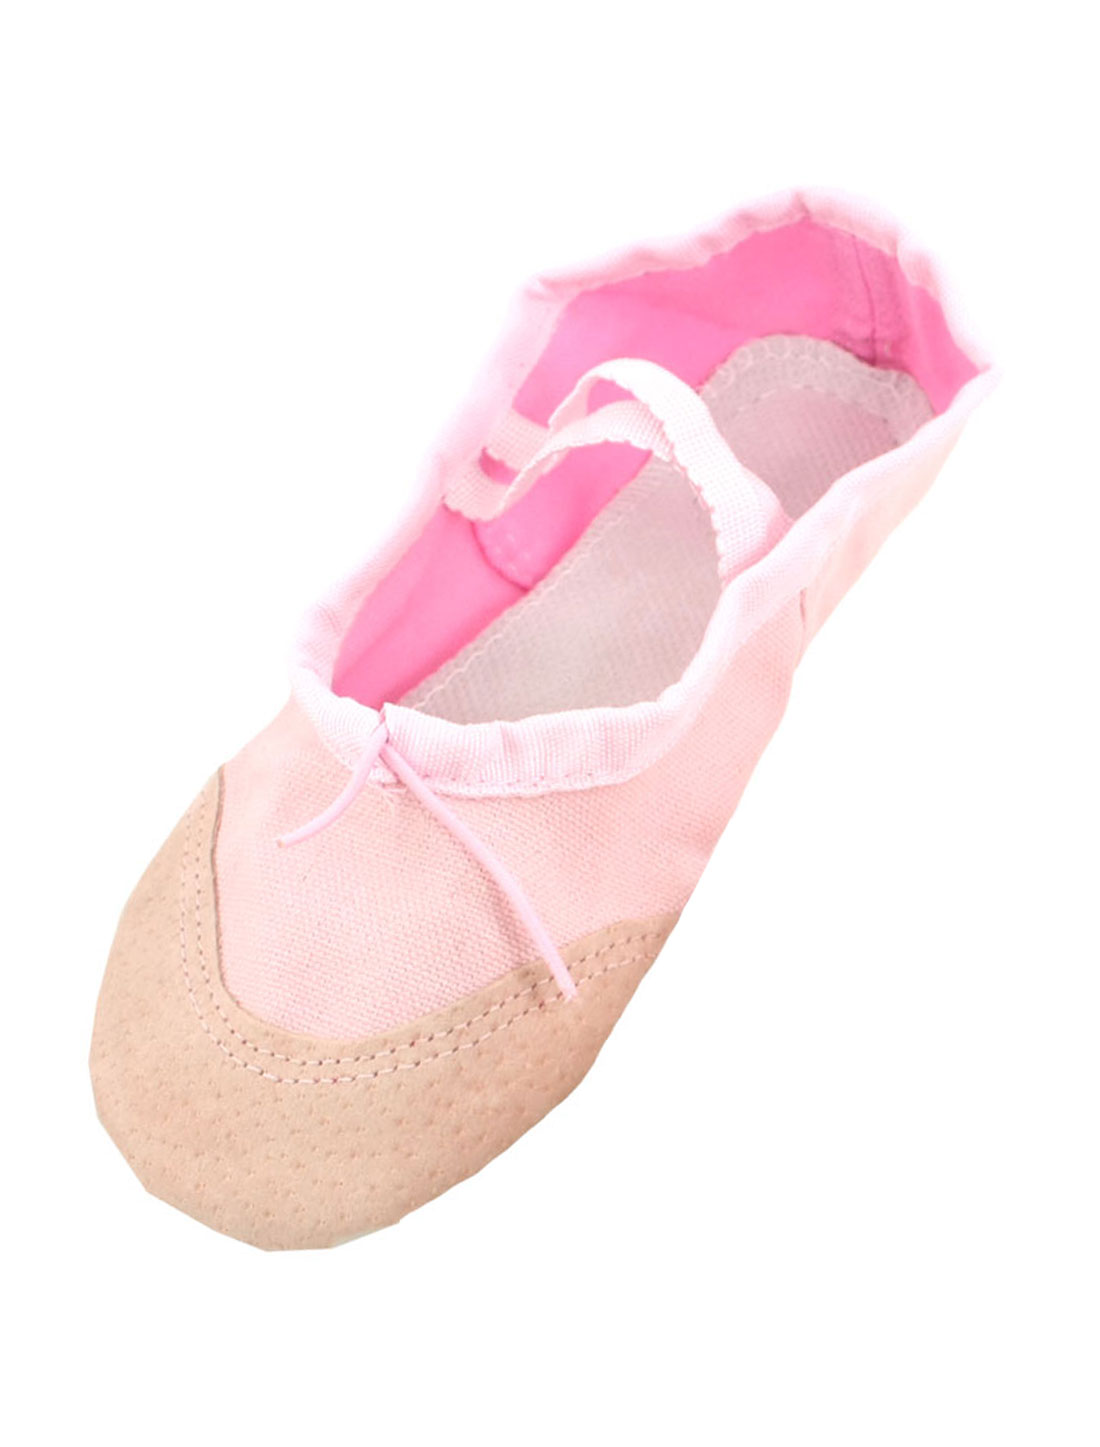 UK 12.5 Drawstring Ballet Dancing Training Flats Shoes Pink for Girls